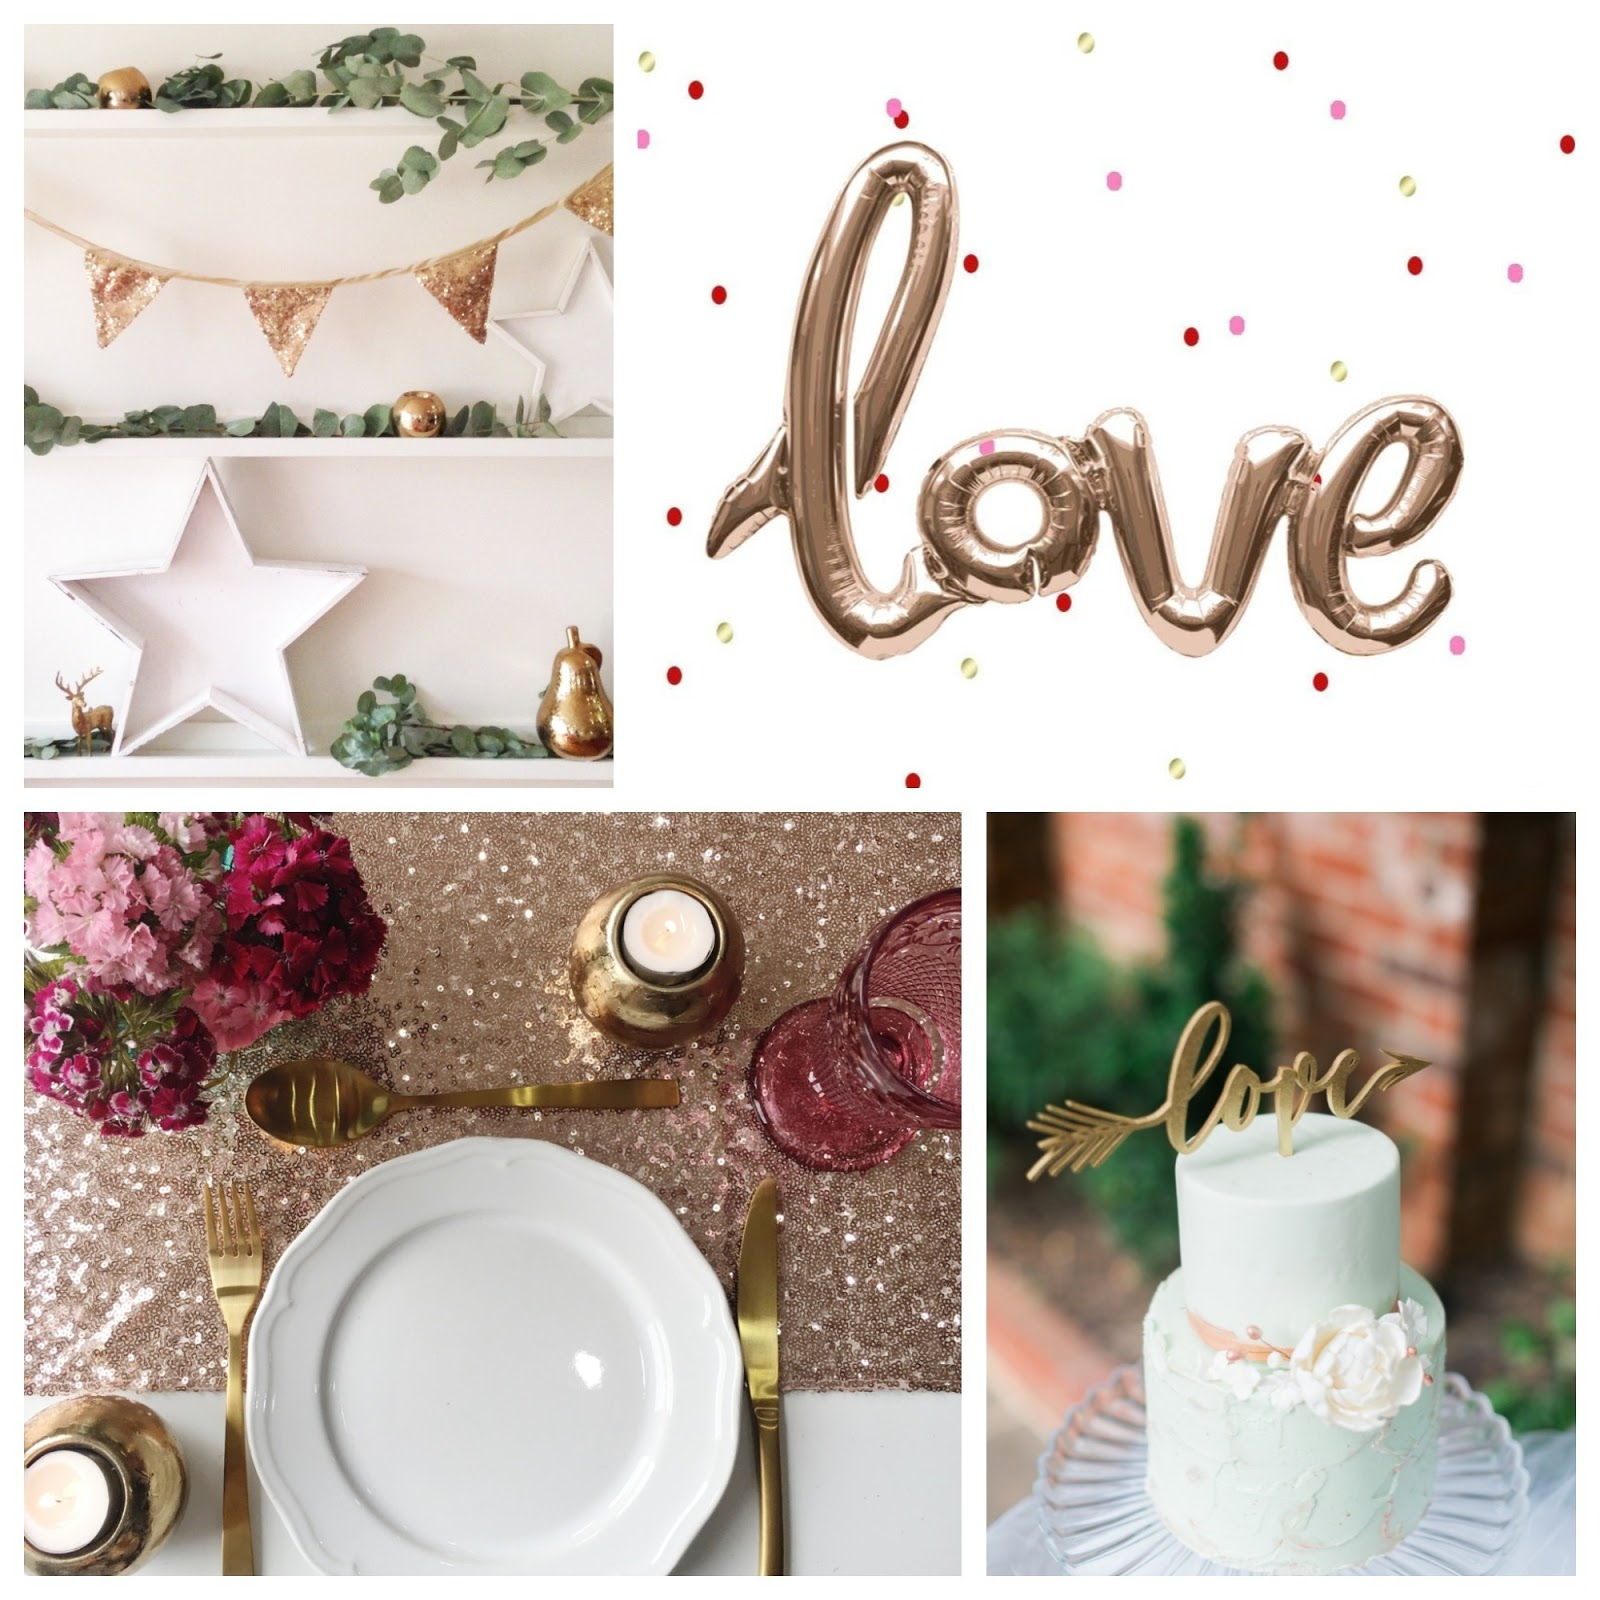 Donde Comprar Letras Para Decorar 3 Ideas Originales Para Decorar La Candy Bar De Tu Boda